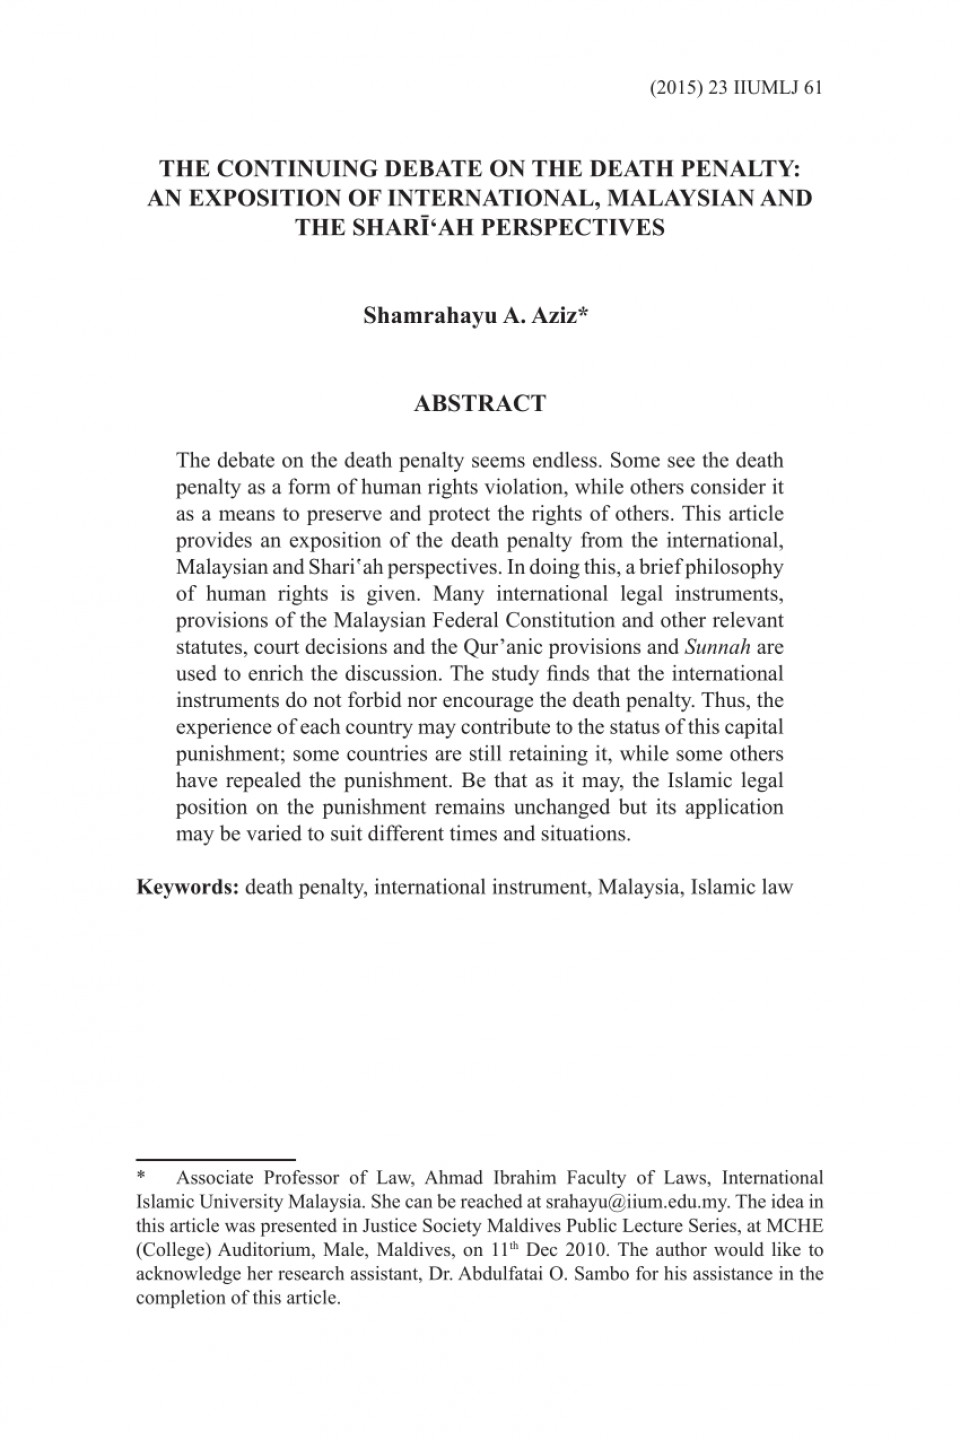 004 Death Penalty Research Paper Abstract Remarkable 960